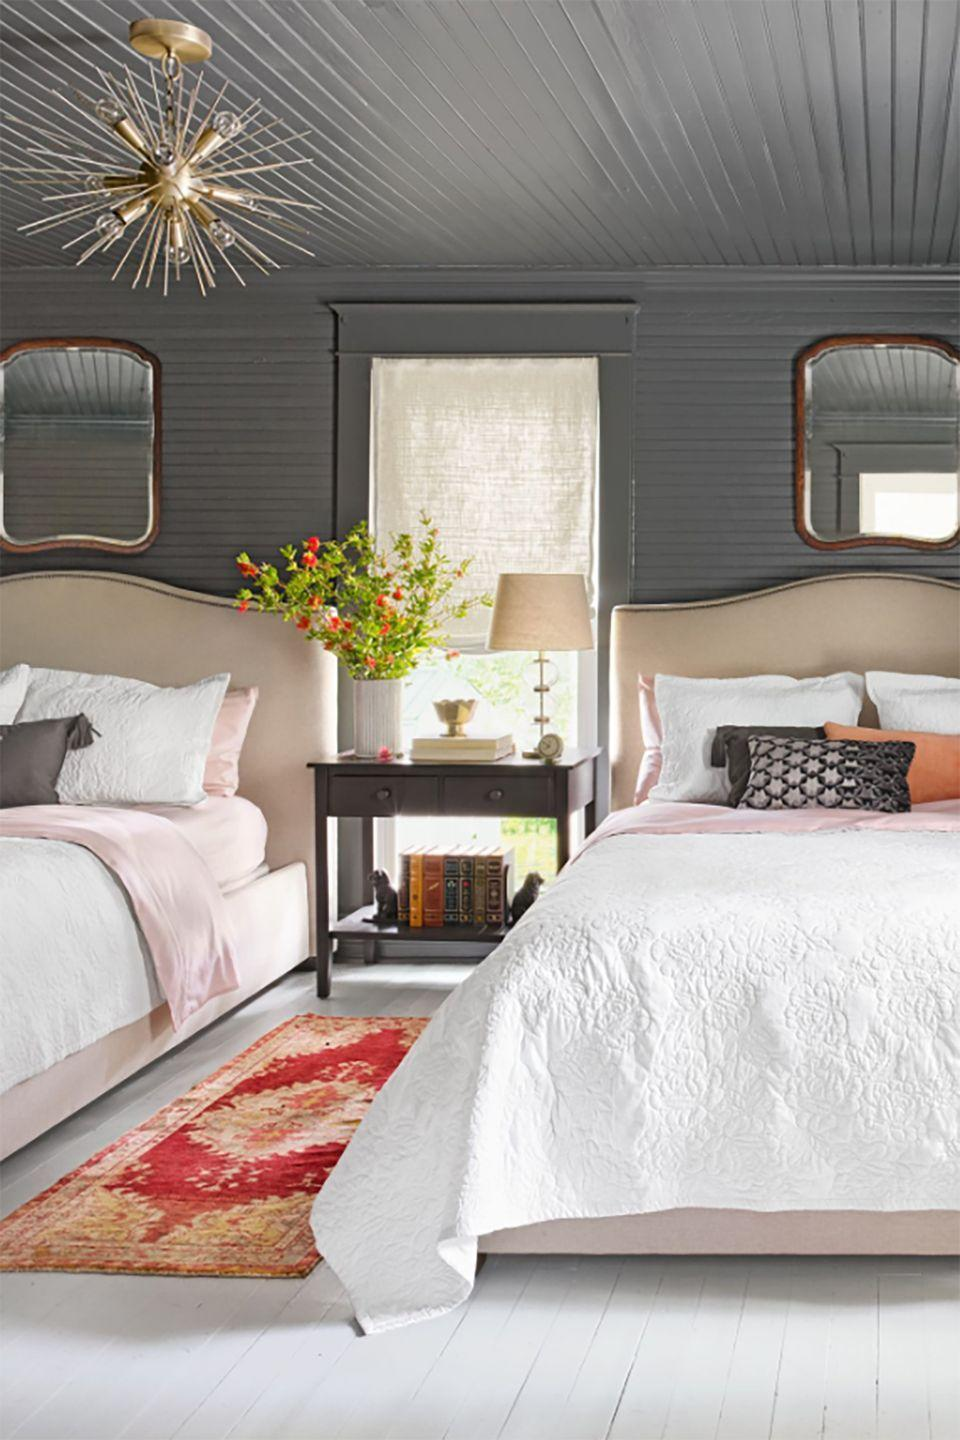 <p>Welcome guests with all the essentials needed for an enjoyable stay: comfortable beds, great lighting, and a nightstand full of good reads.</p>